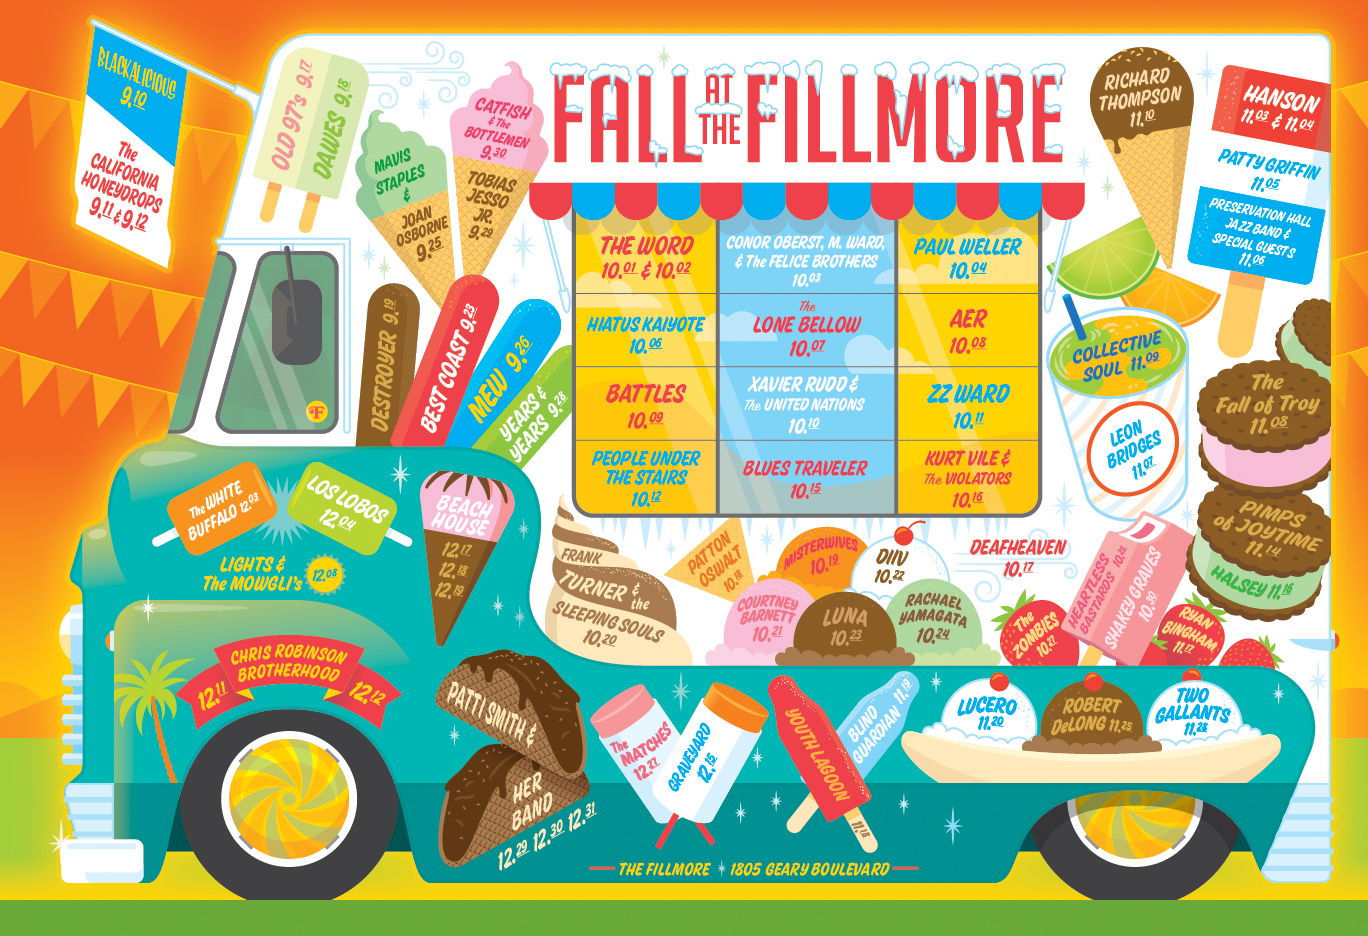 Fall at the Fillmore 2015